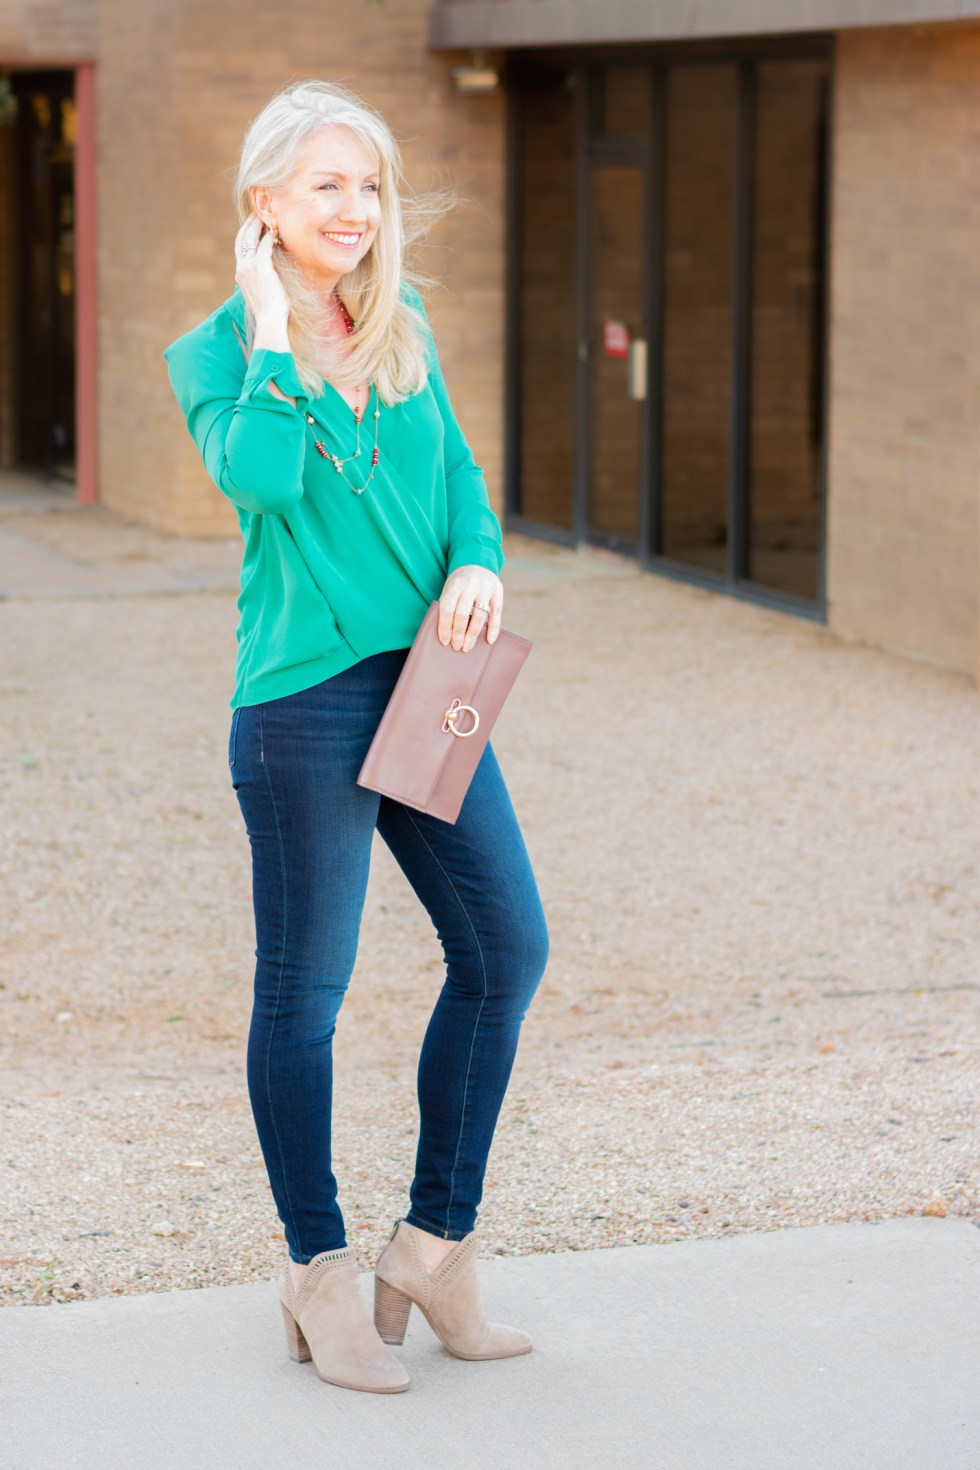 Cutout Surplice Top + Skinny Jeans for casual date night